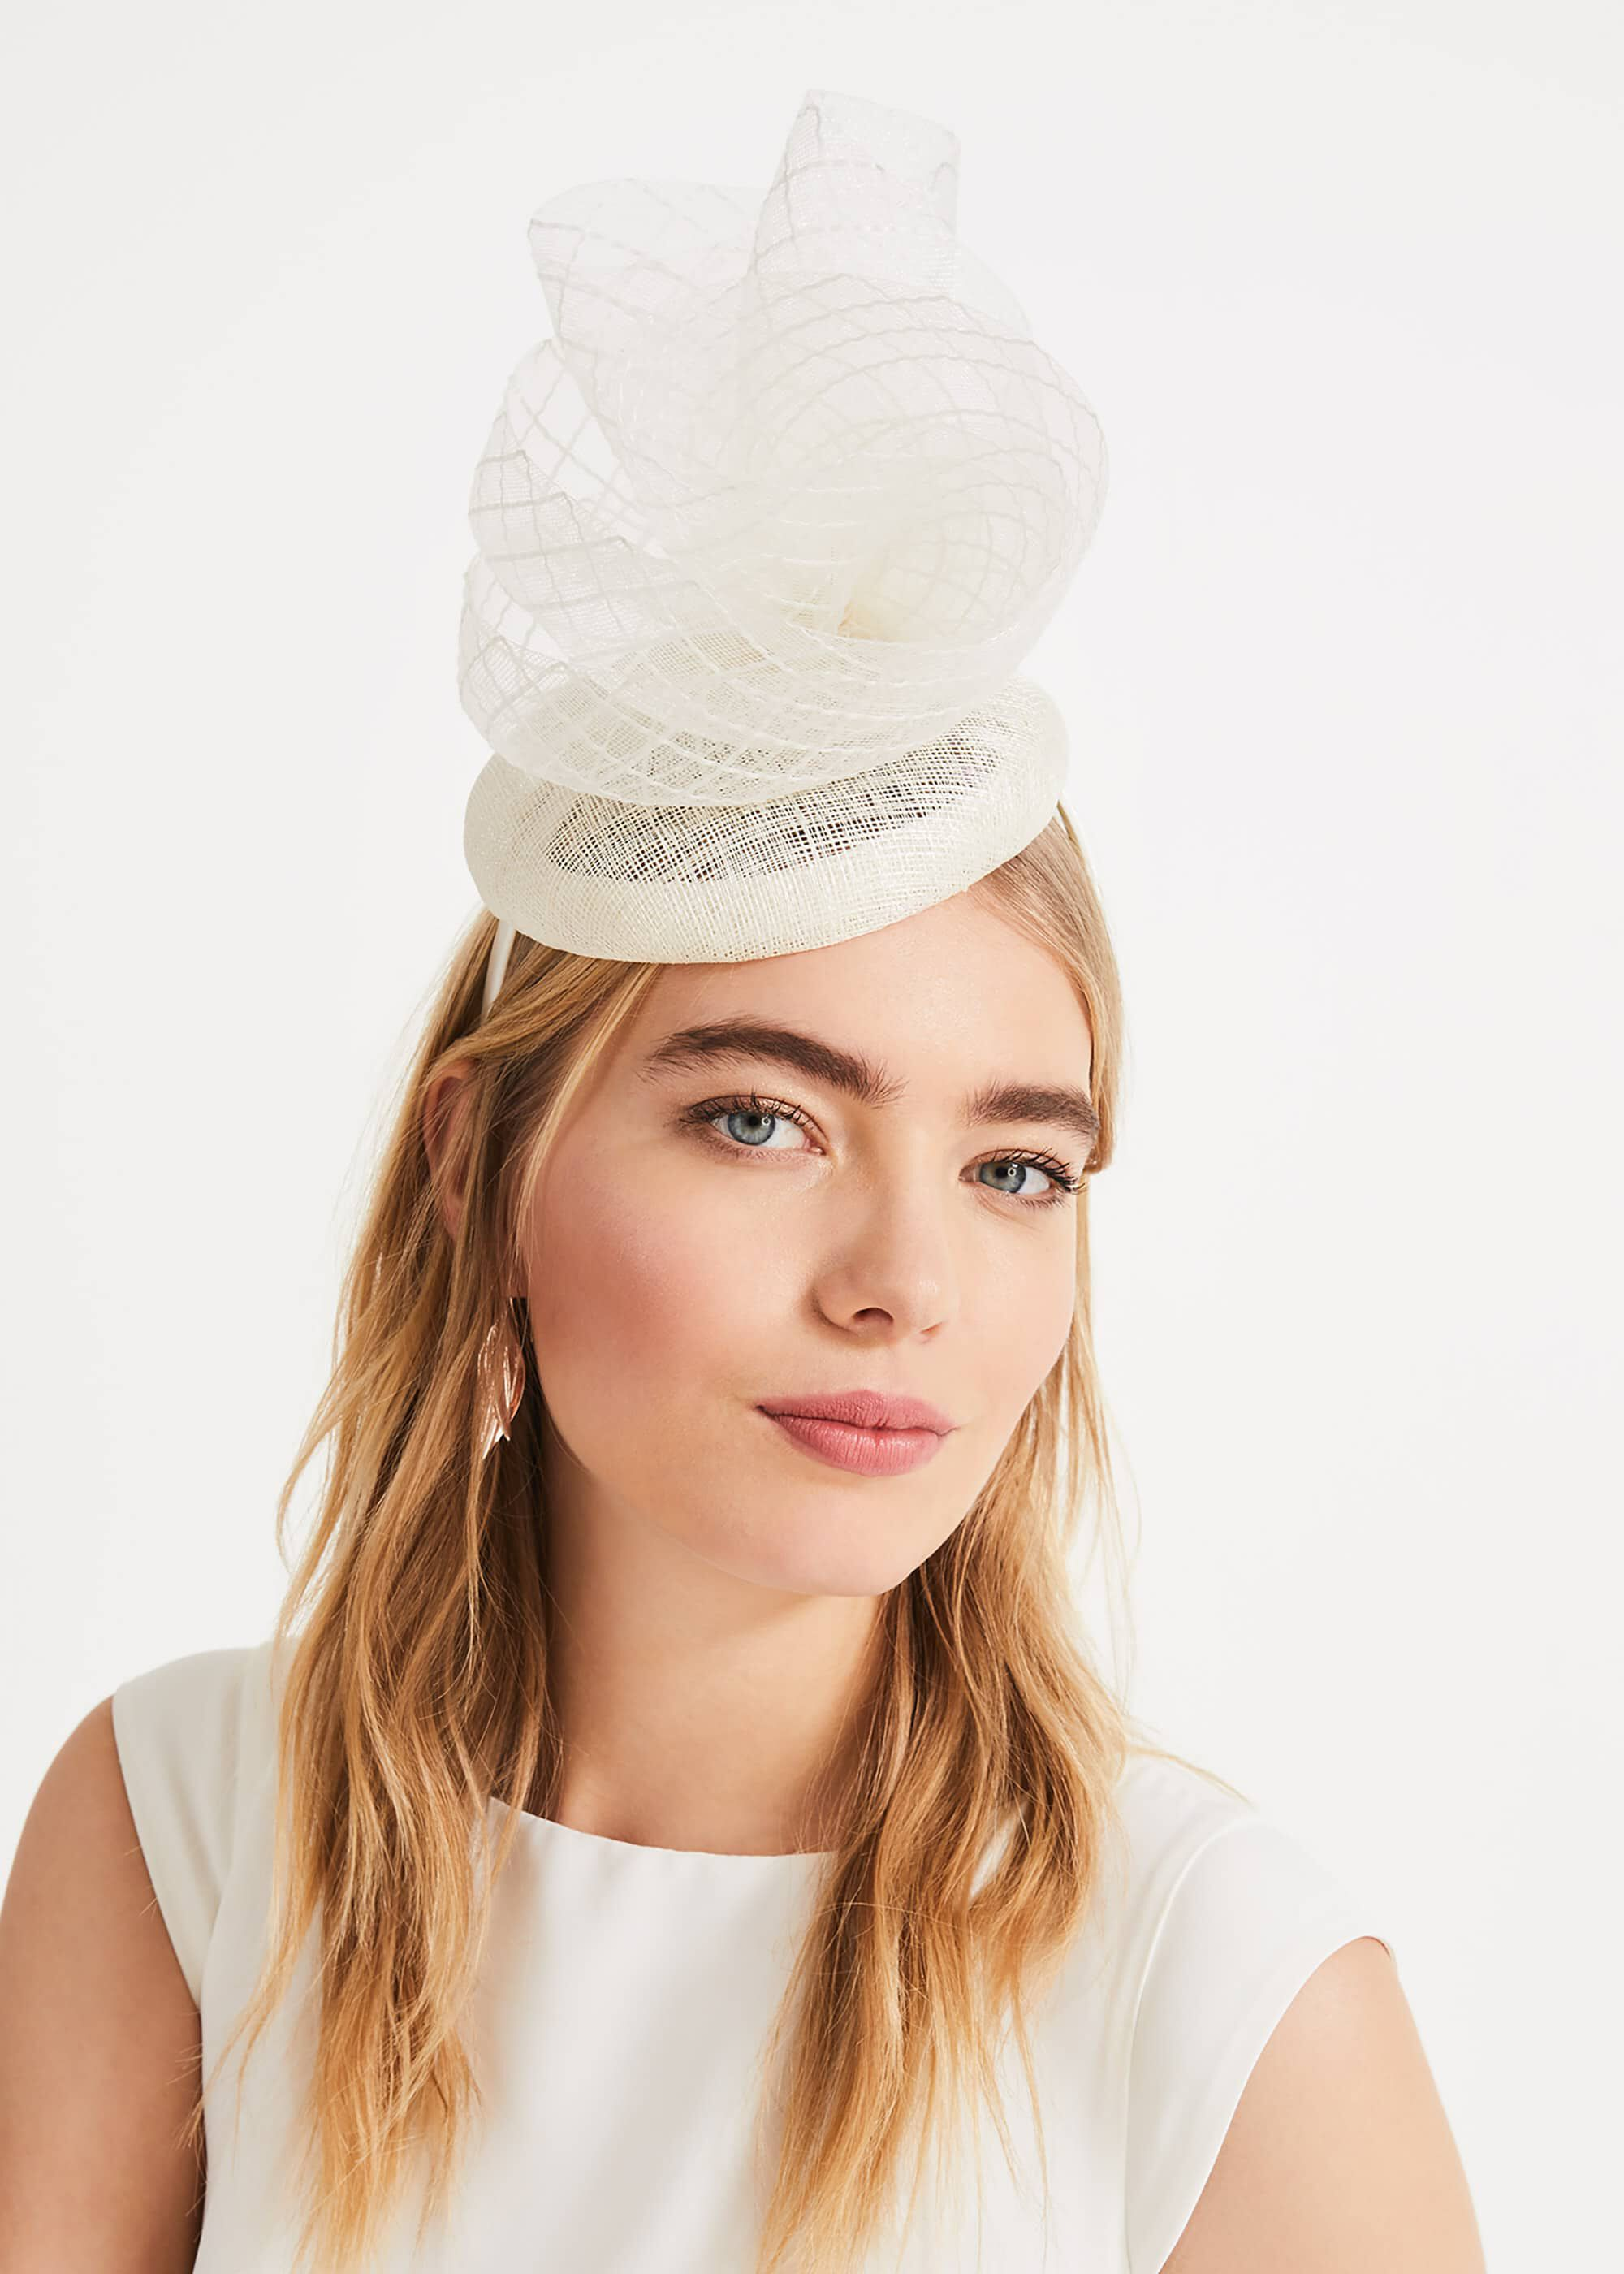 Phase Eight Betsy Lace Top Pillbox Fascinator, Cream, Fascinator